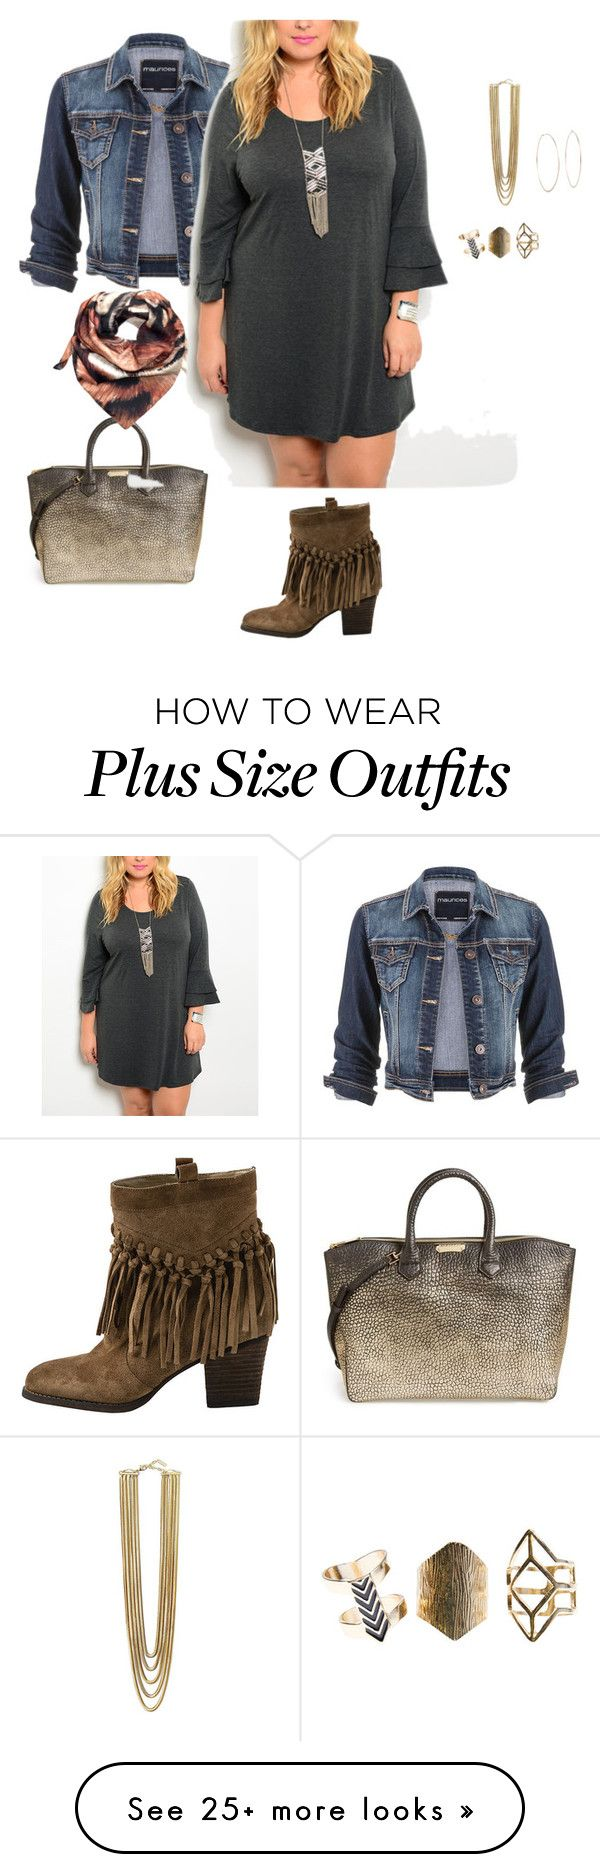 """""""plus size pretty girl fall"""" by kristie-payne on Polyvore featuring Sbicca, maurices, Burberry, Joanna Allsop, Michael Kors, Vince Camuto, Wet Seal and plus size dresses"""